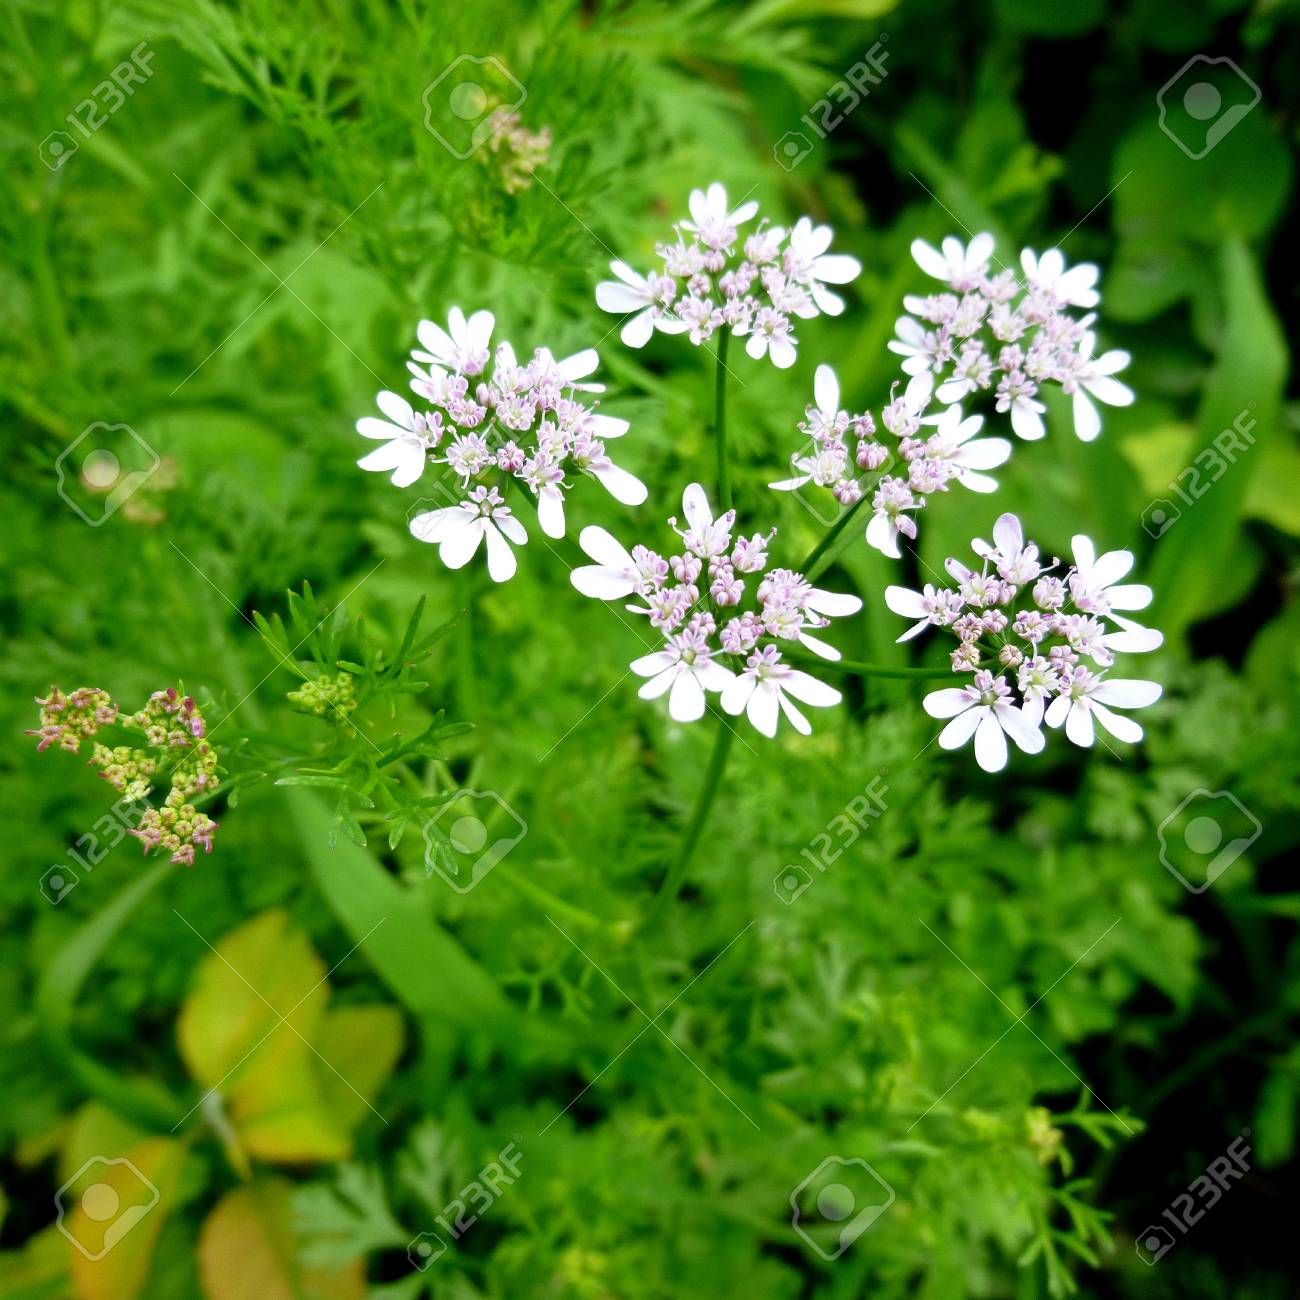 White Flower On Cilantro Plant Vegetable Garden Plants Natural